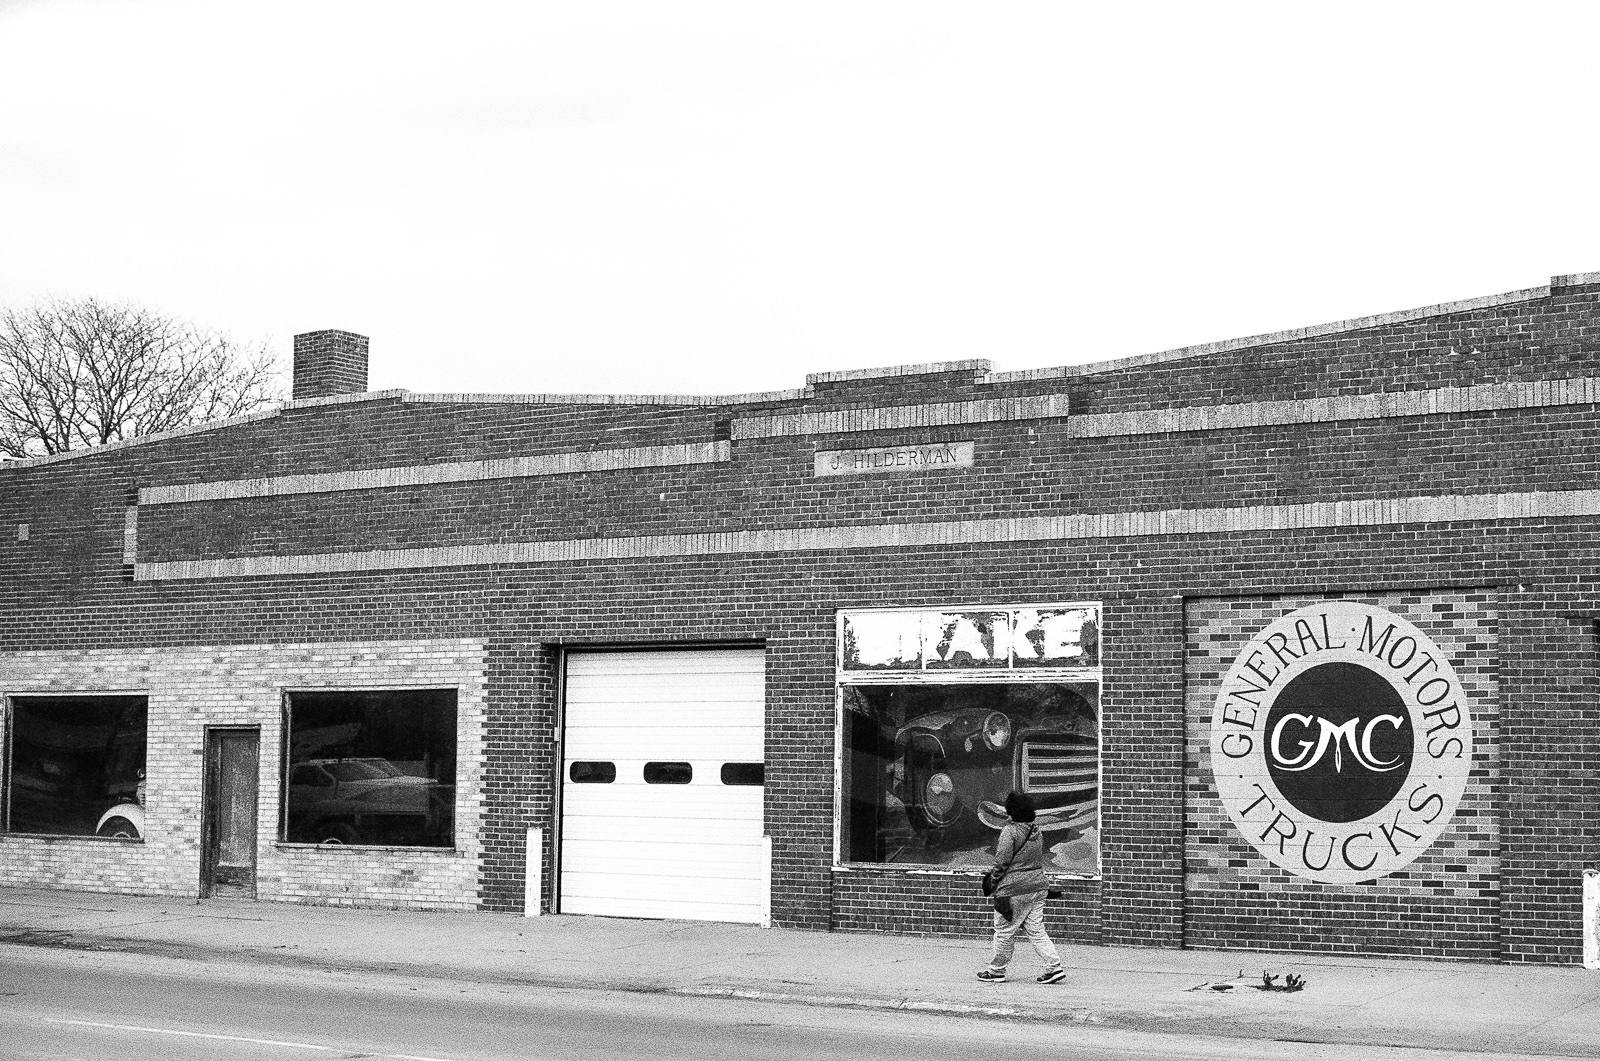 Day 138- 365 Day B&W Photo Challenge - The J. Hilderman GMC Truck Building in Sterling, Colorado. - Minolta X-700 using Ilford Delta HP5 black and white film pushed 1 stop.